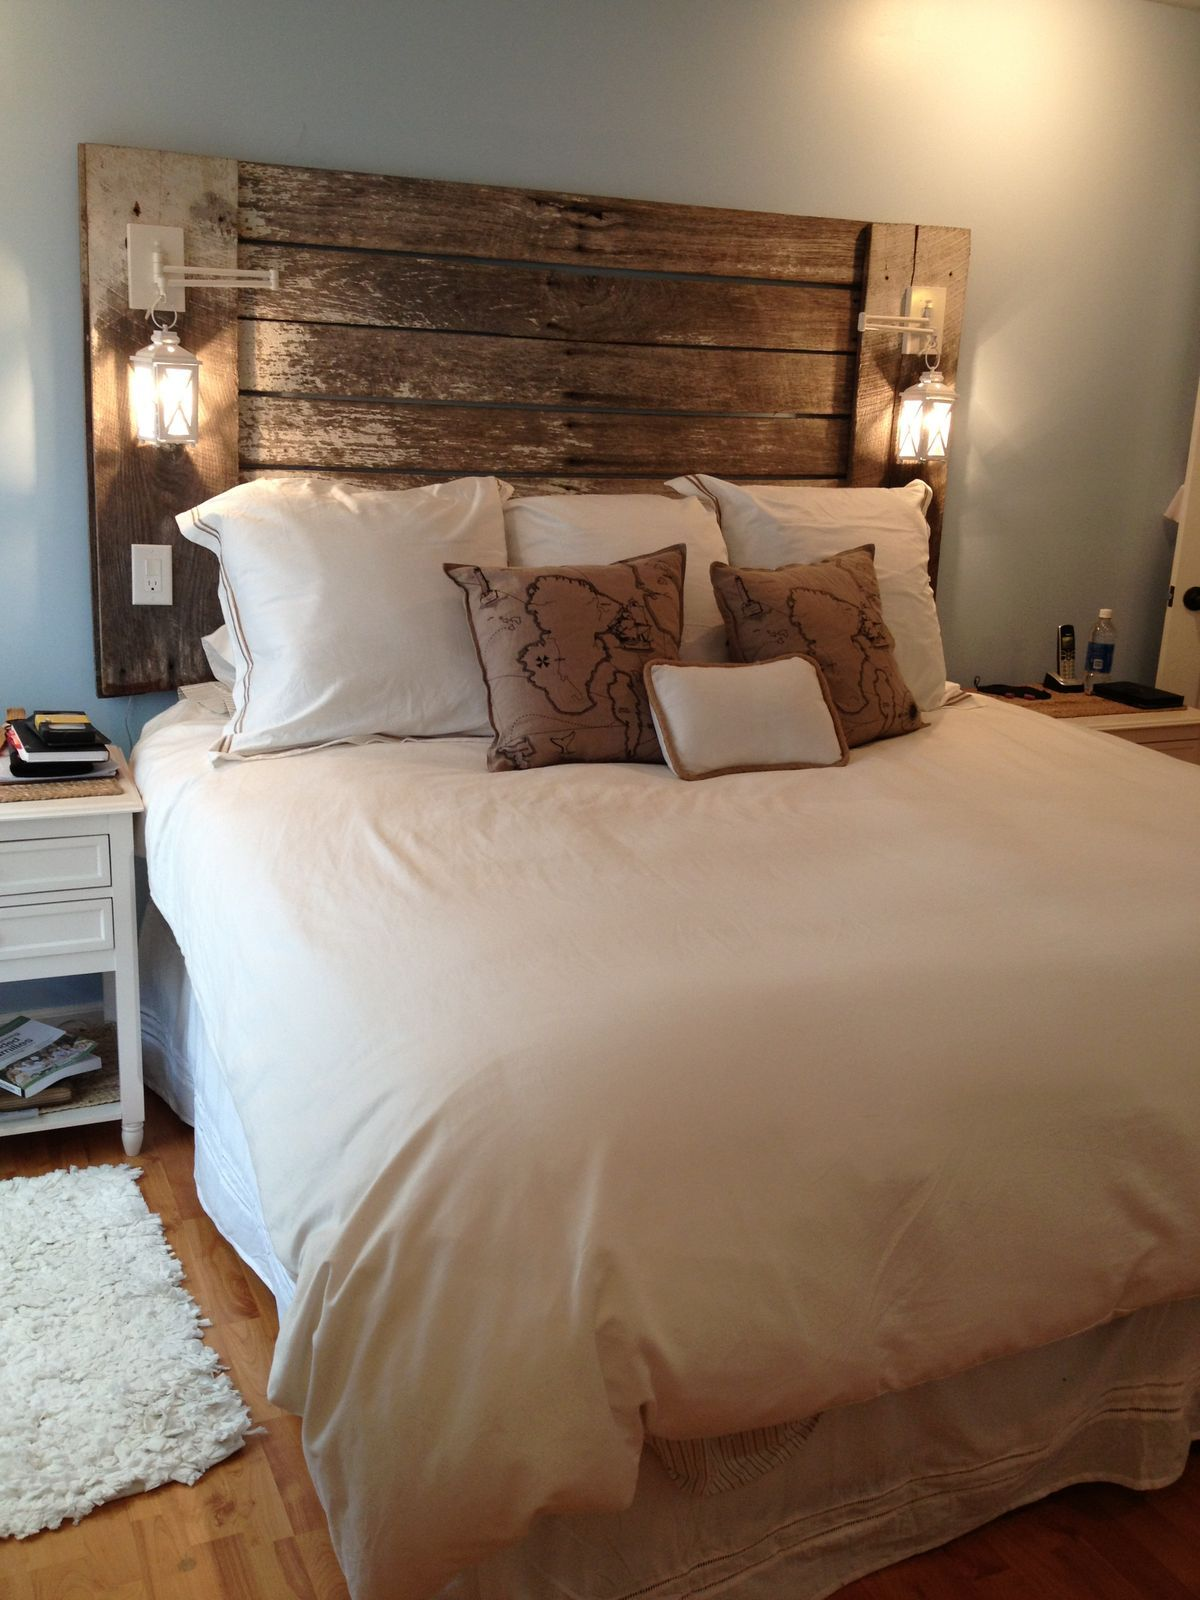 headboard - reclaimed barn lumber and candle lanterns.